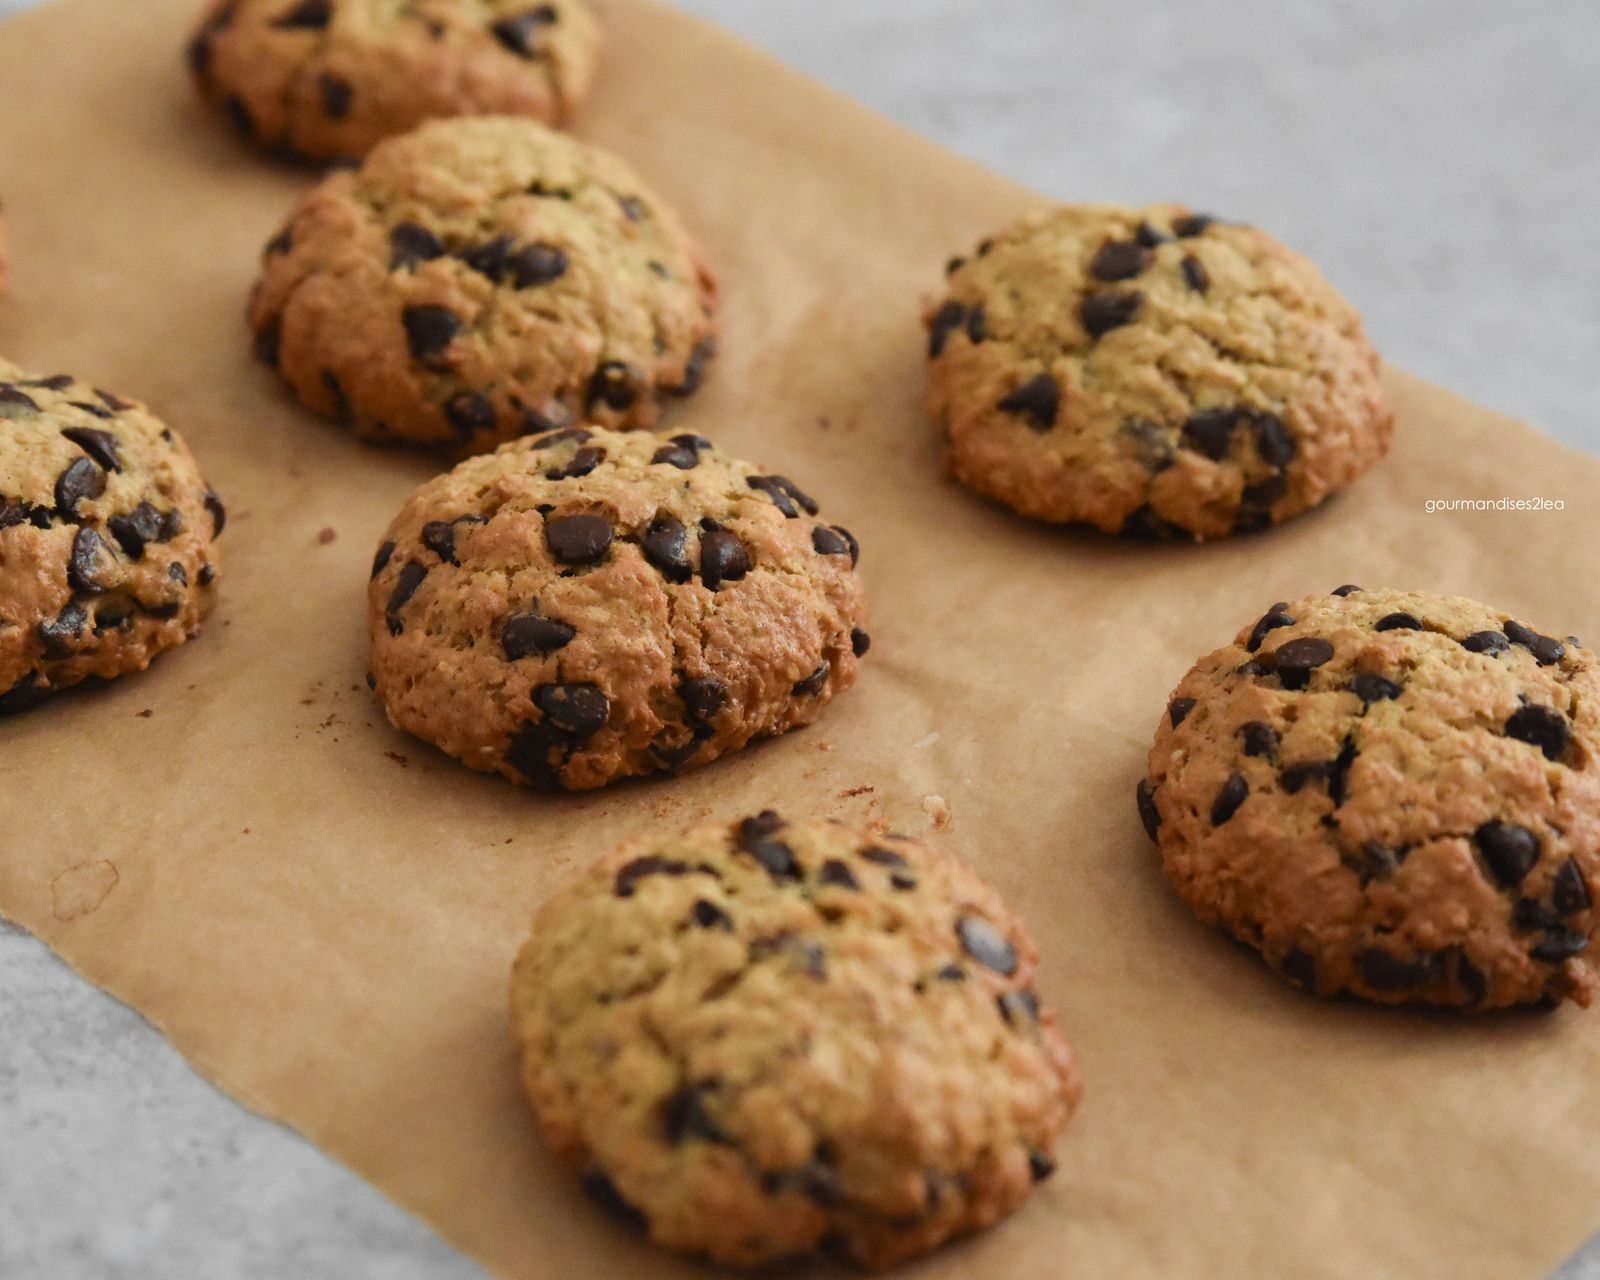 Cookie à l'avoine, sirop d'érable et chocolat